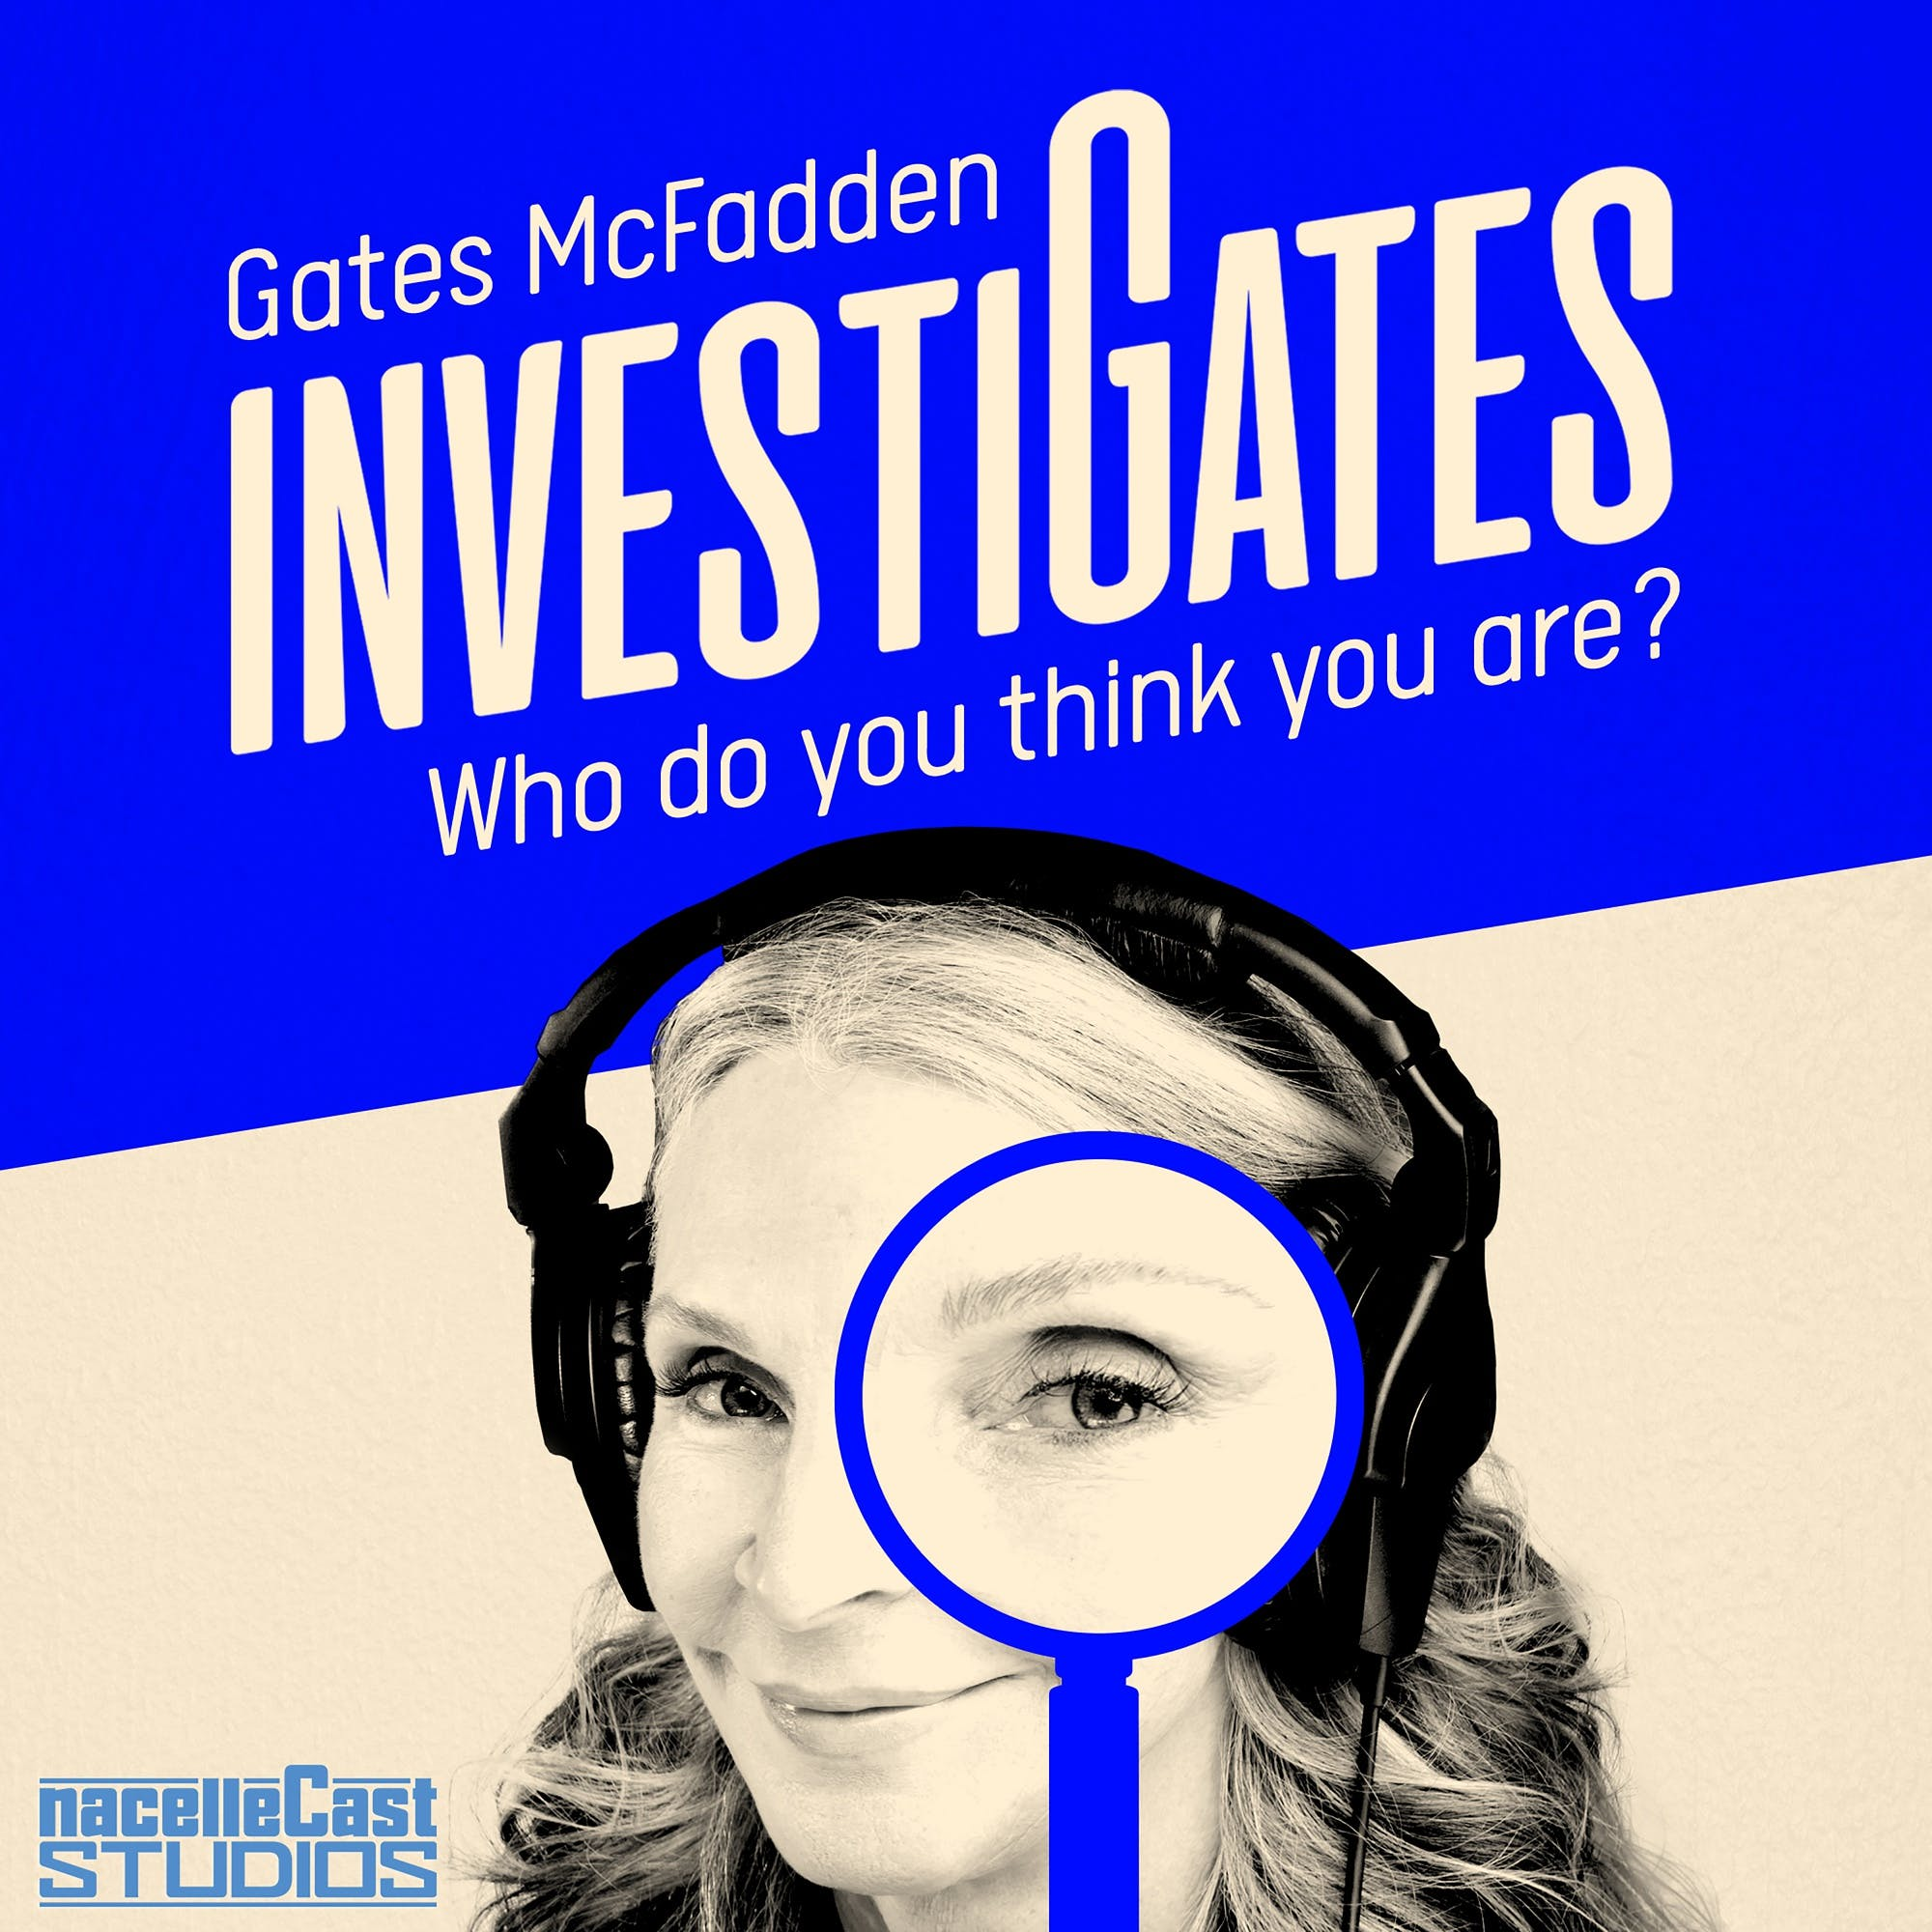 Gates McFadden Investigates: Who do you think you are? podcast show image